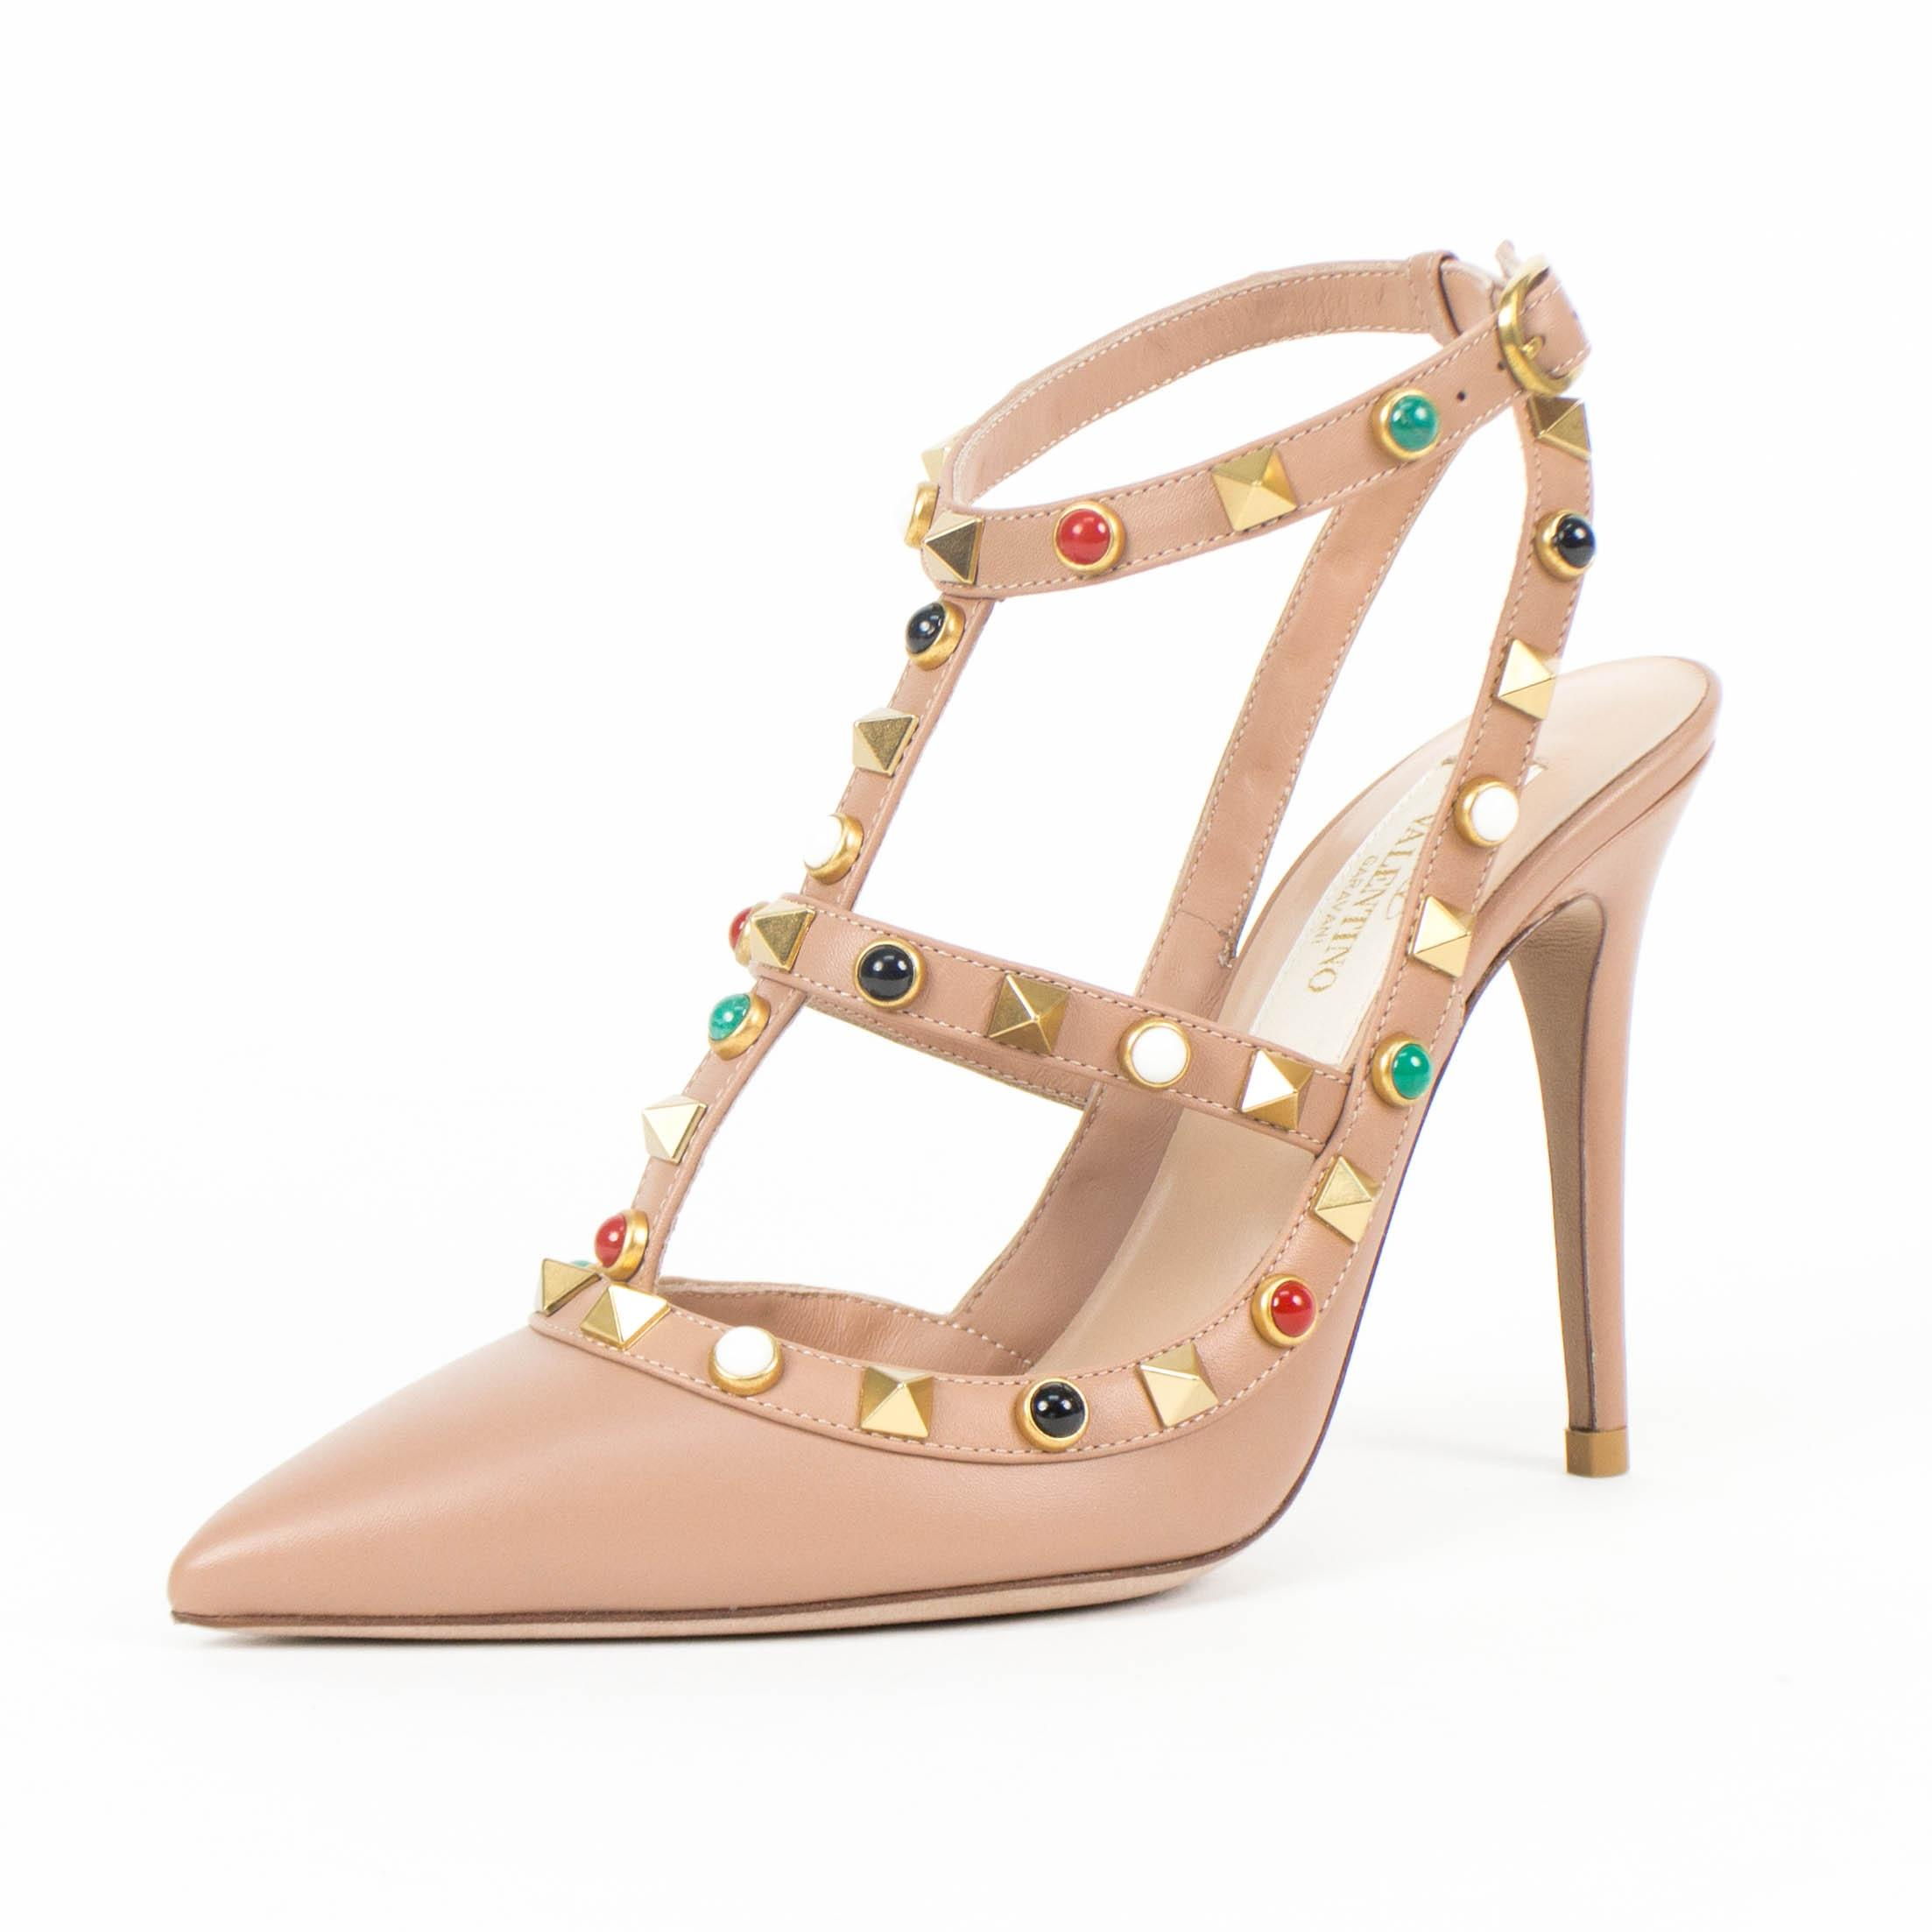 Valentino Nude Leather Rockstud Multiple Stone Heel Pumps Size EU 35 (Approx. US 5) Regular (M, B)